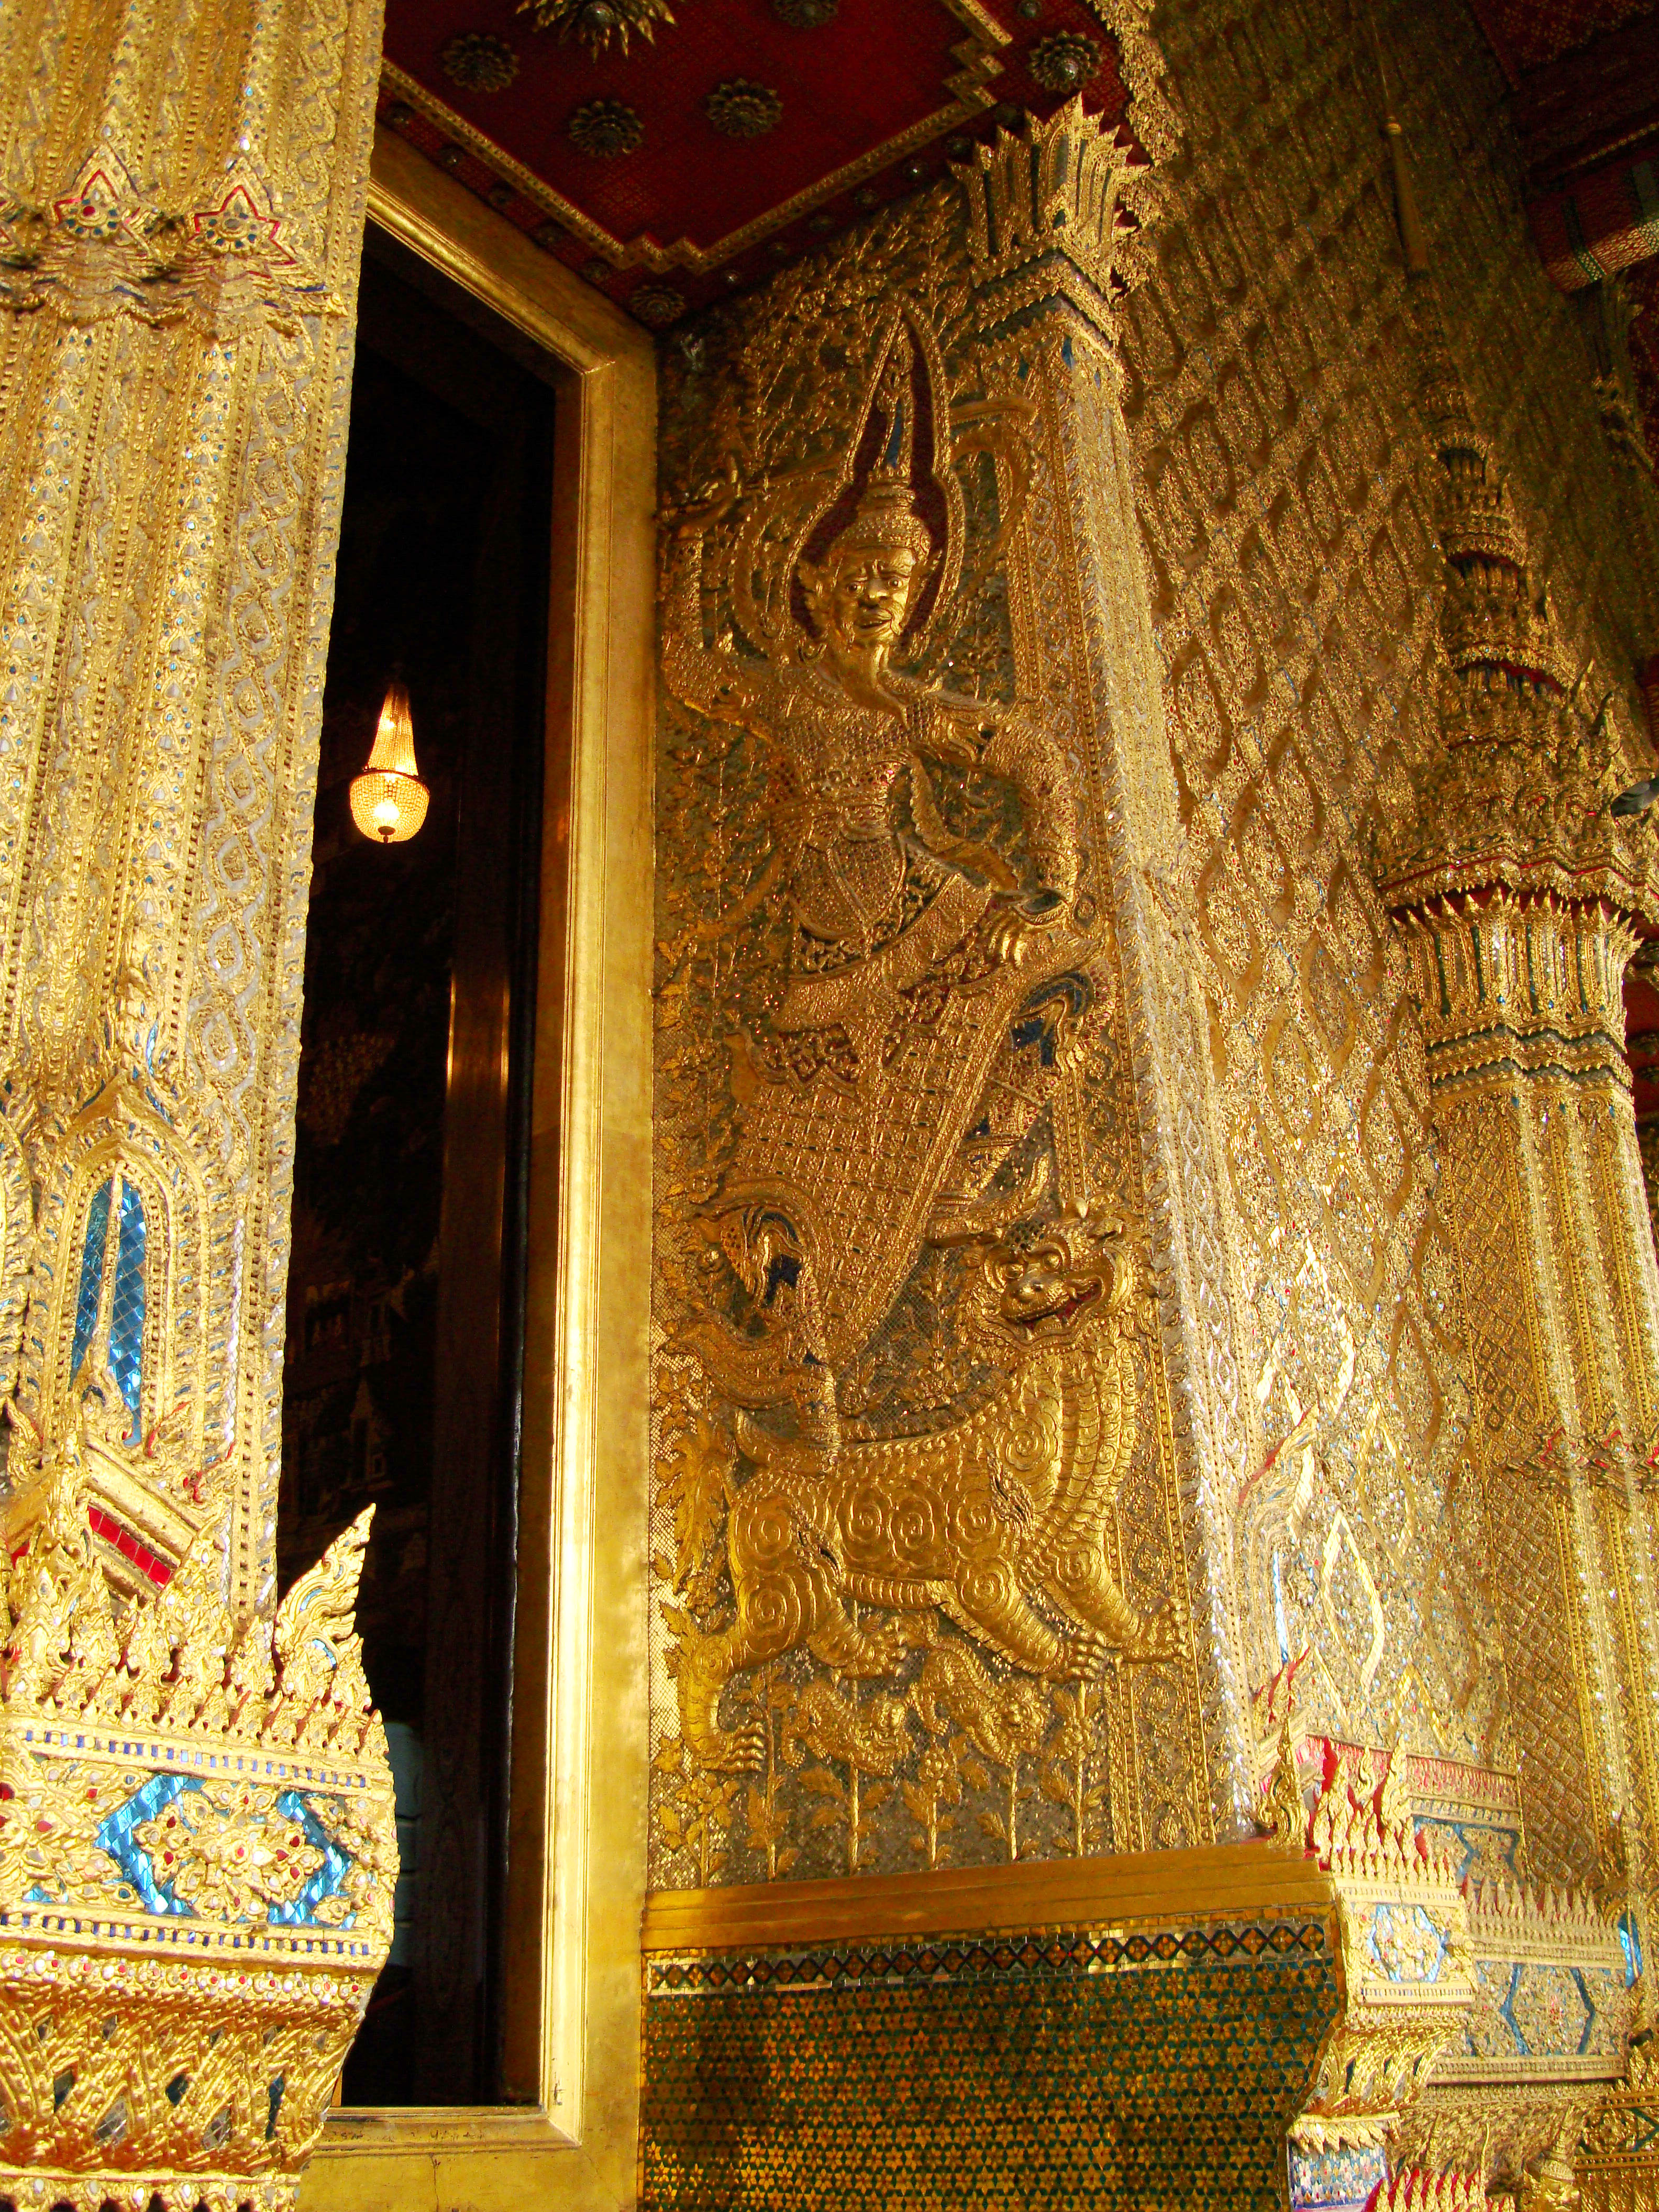 10 Temple of the Emerald Buddha intercrit designed walls pillars Grand Palace 06